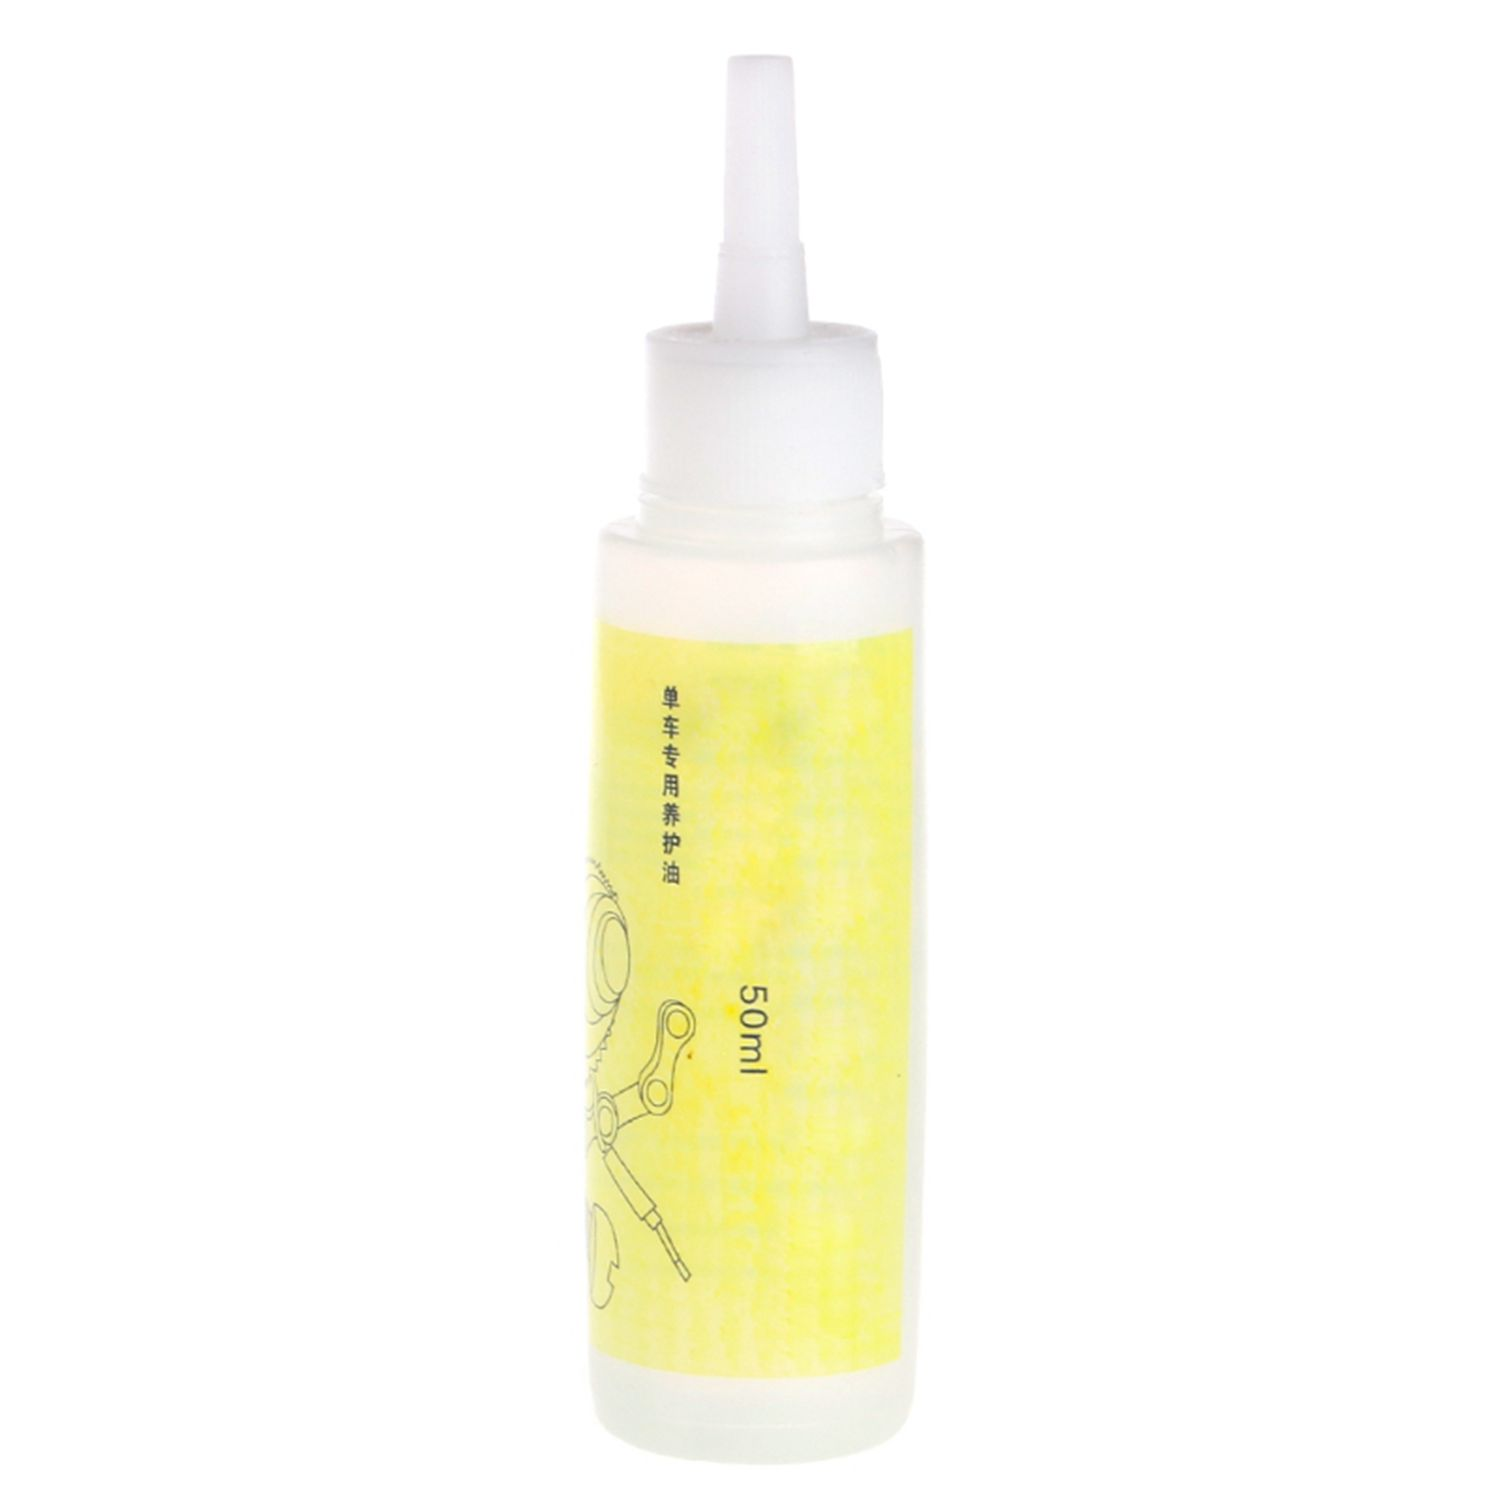 SEWS-50ML Bike Bicycle Chain Special Lube Lubricating Oil Cycling Cleaner